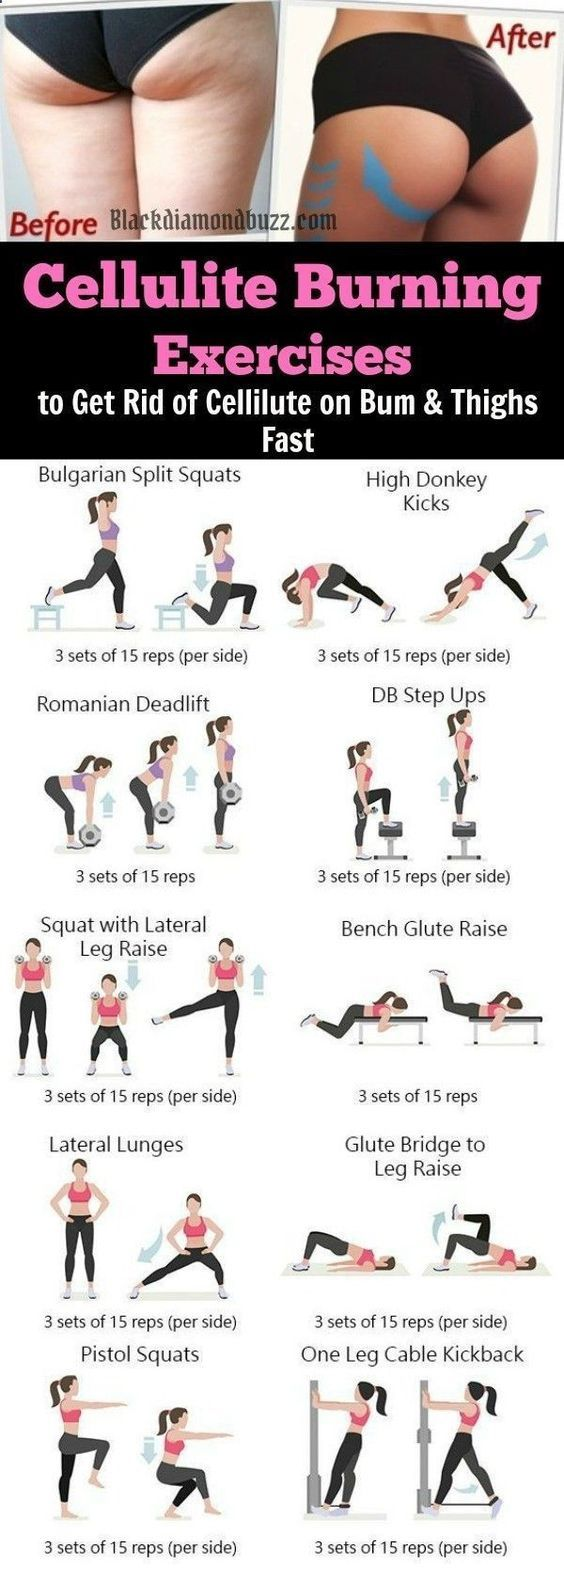 Burn That Cellulite Fast and Rapid With This Workout Sheet for Women | Posted By: NewHowToLoseBellyFat.com